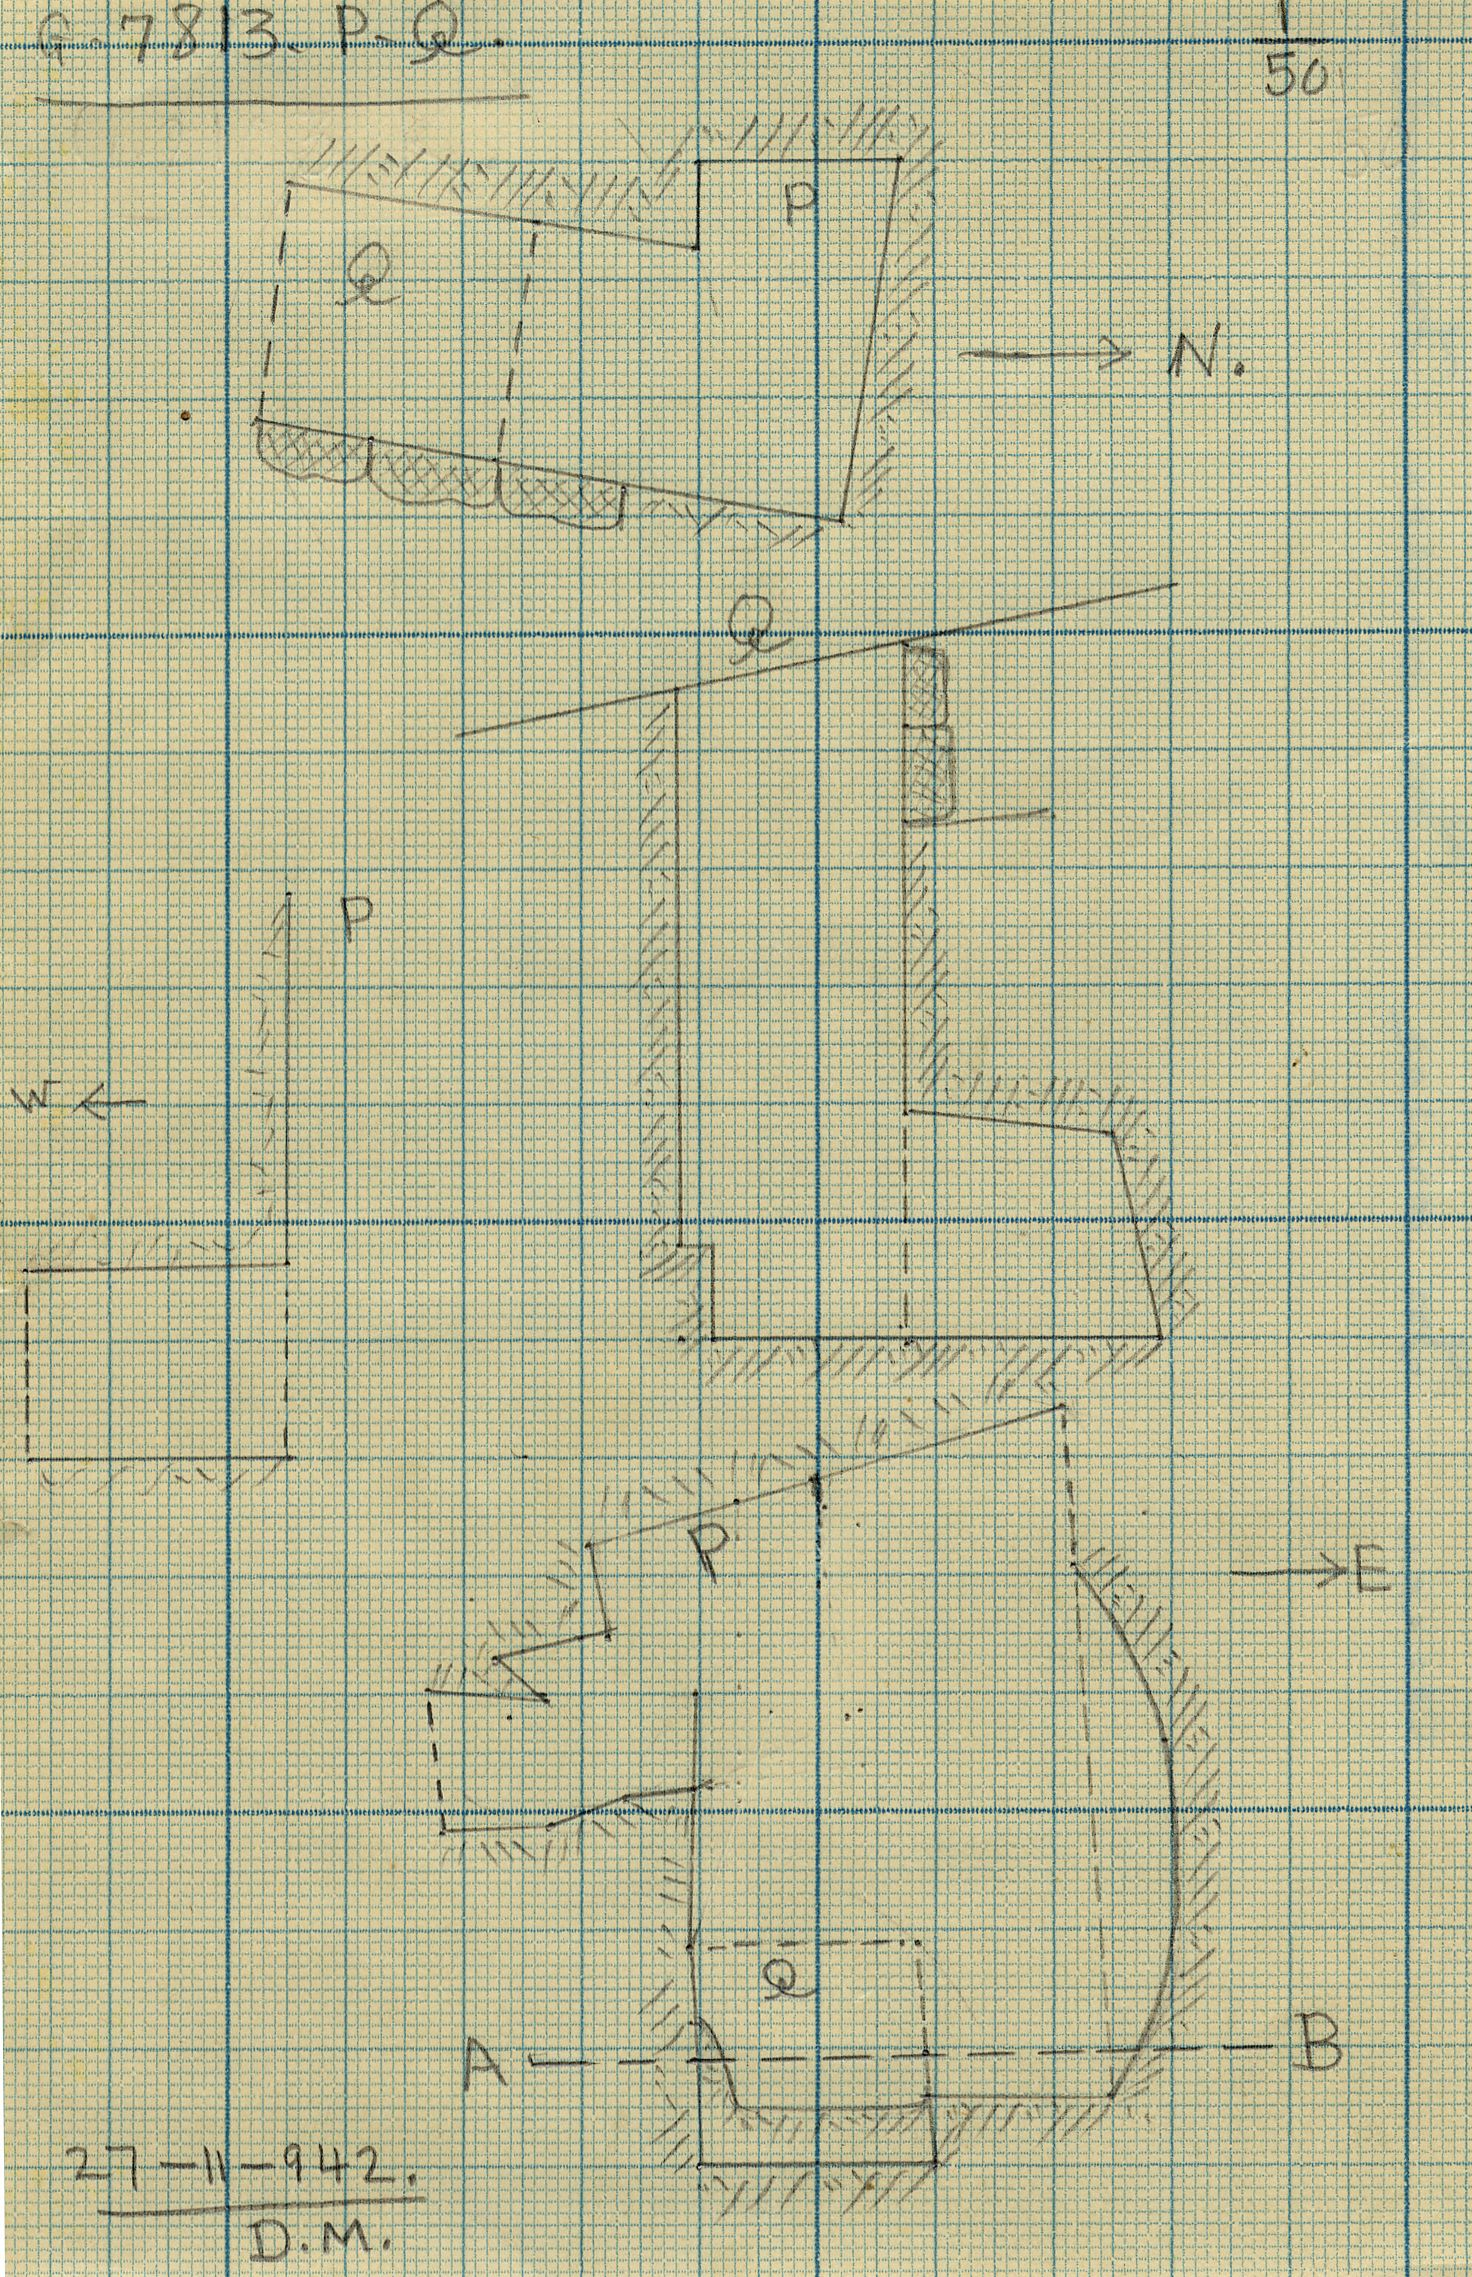 Maps and plans: G 7813, Shaft P and Q